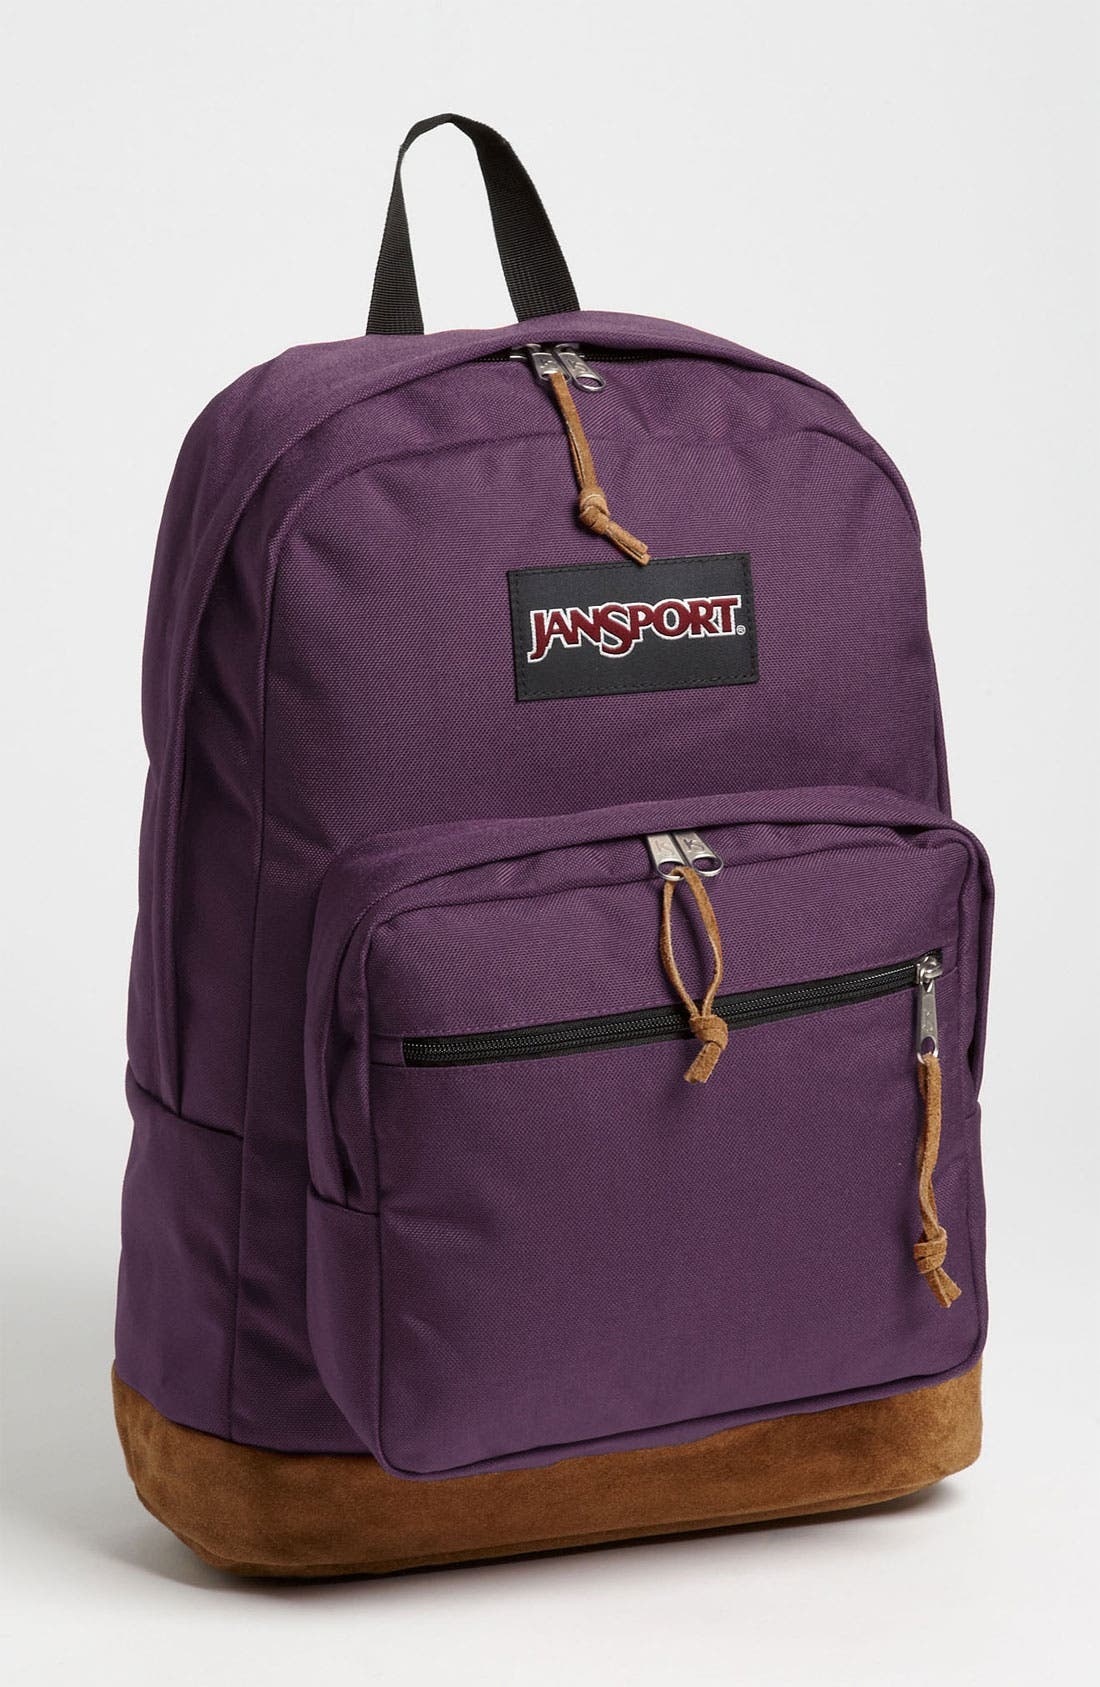 Alternate Image 1 Selected - Jansport 'Right' Backpack